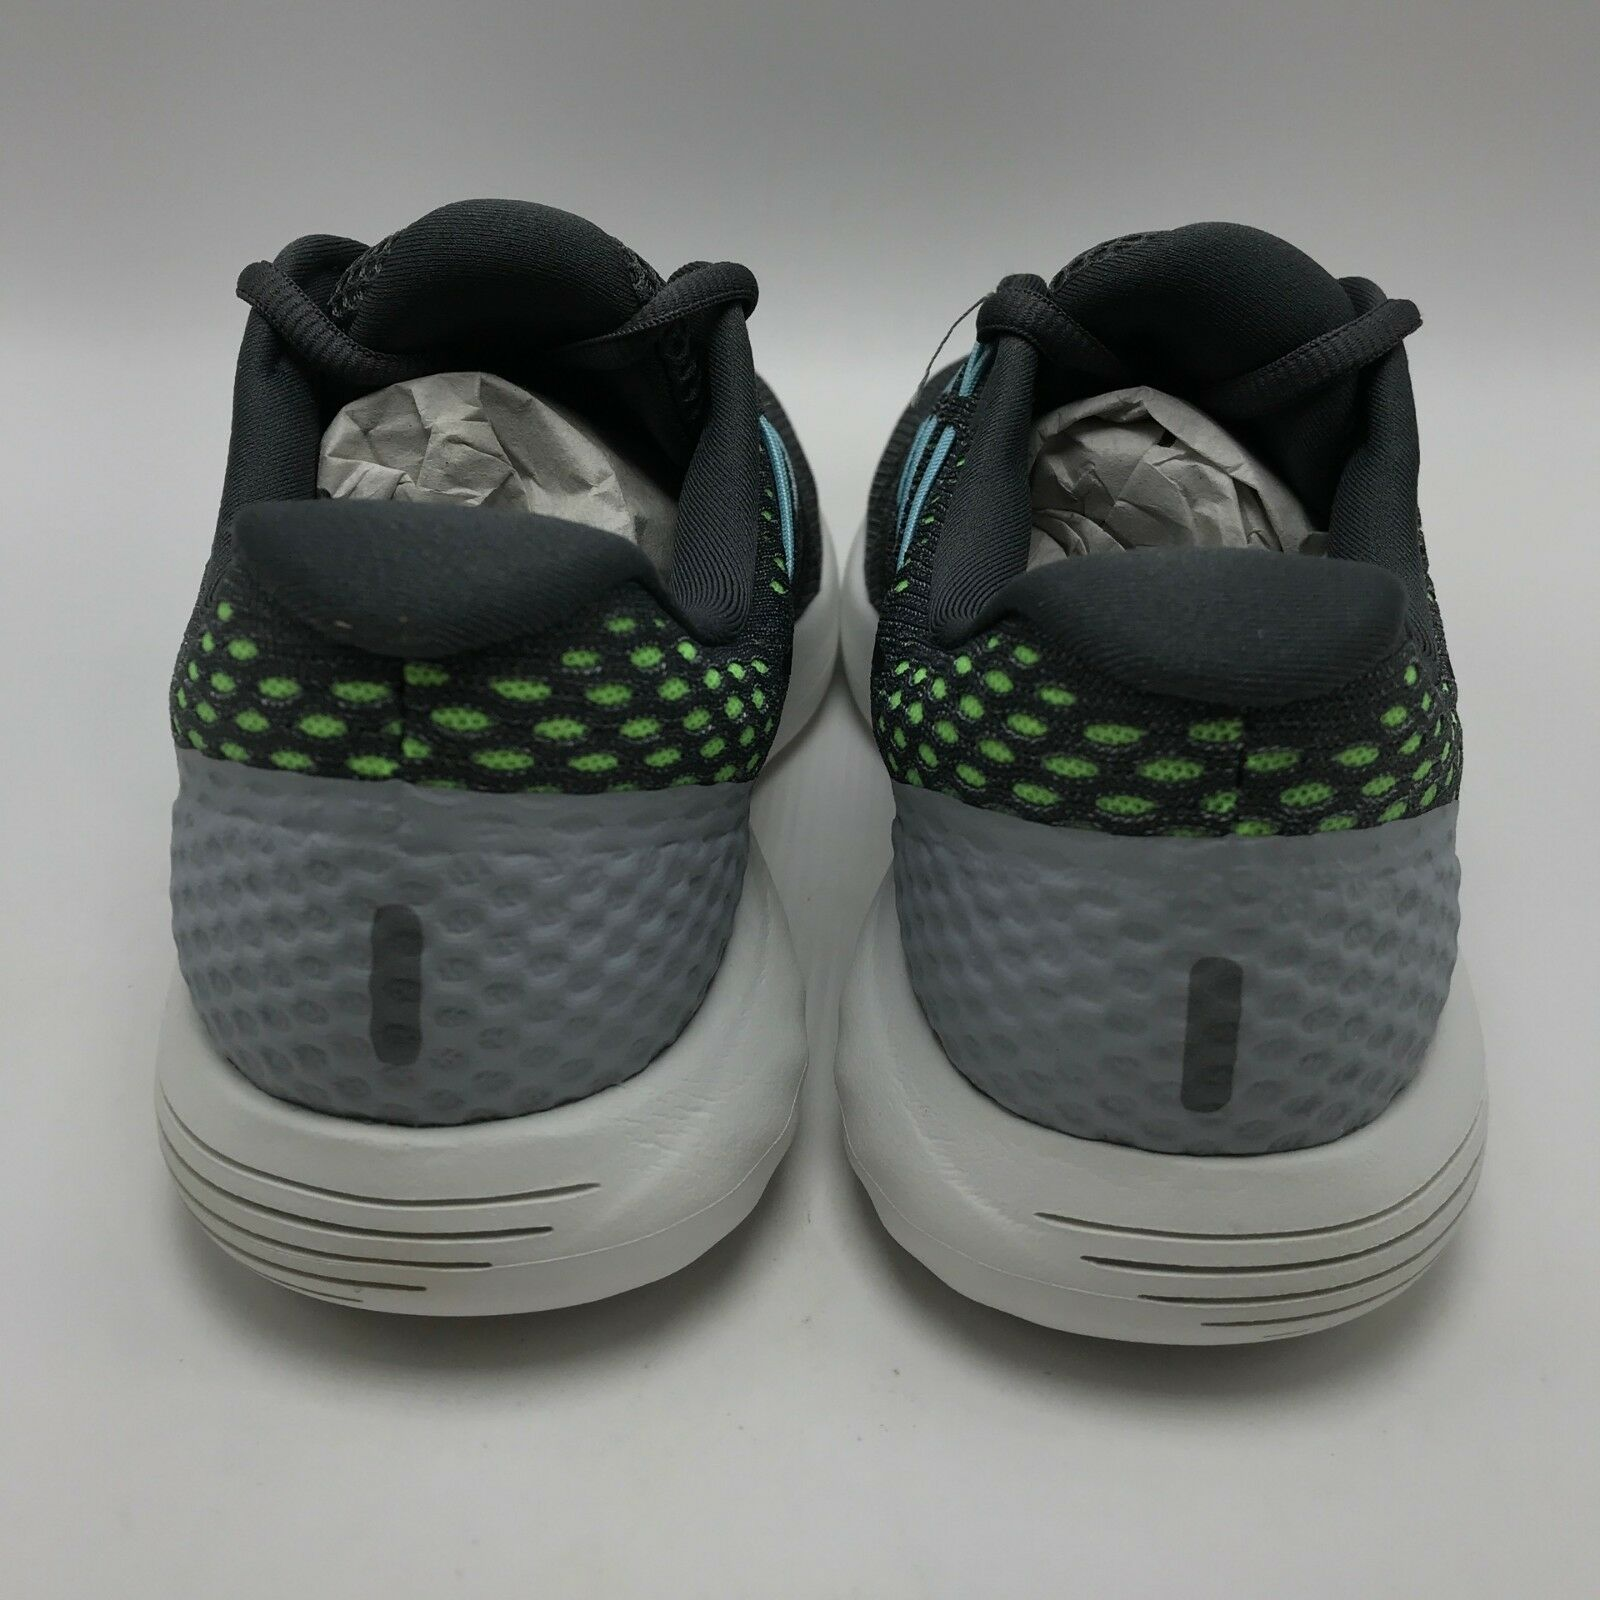 Nike Lunarglide 8 Women's Running shoes Dark Dark Dark Grey Black-Ghost Green 843726-013 716925